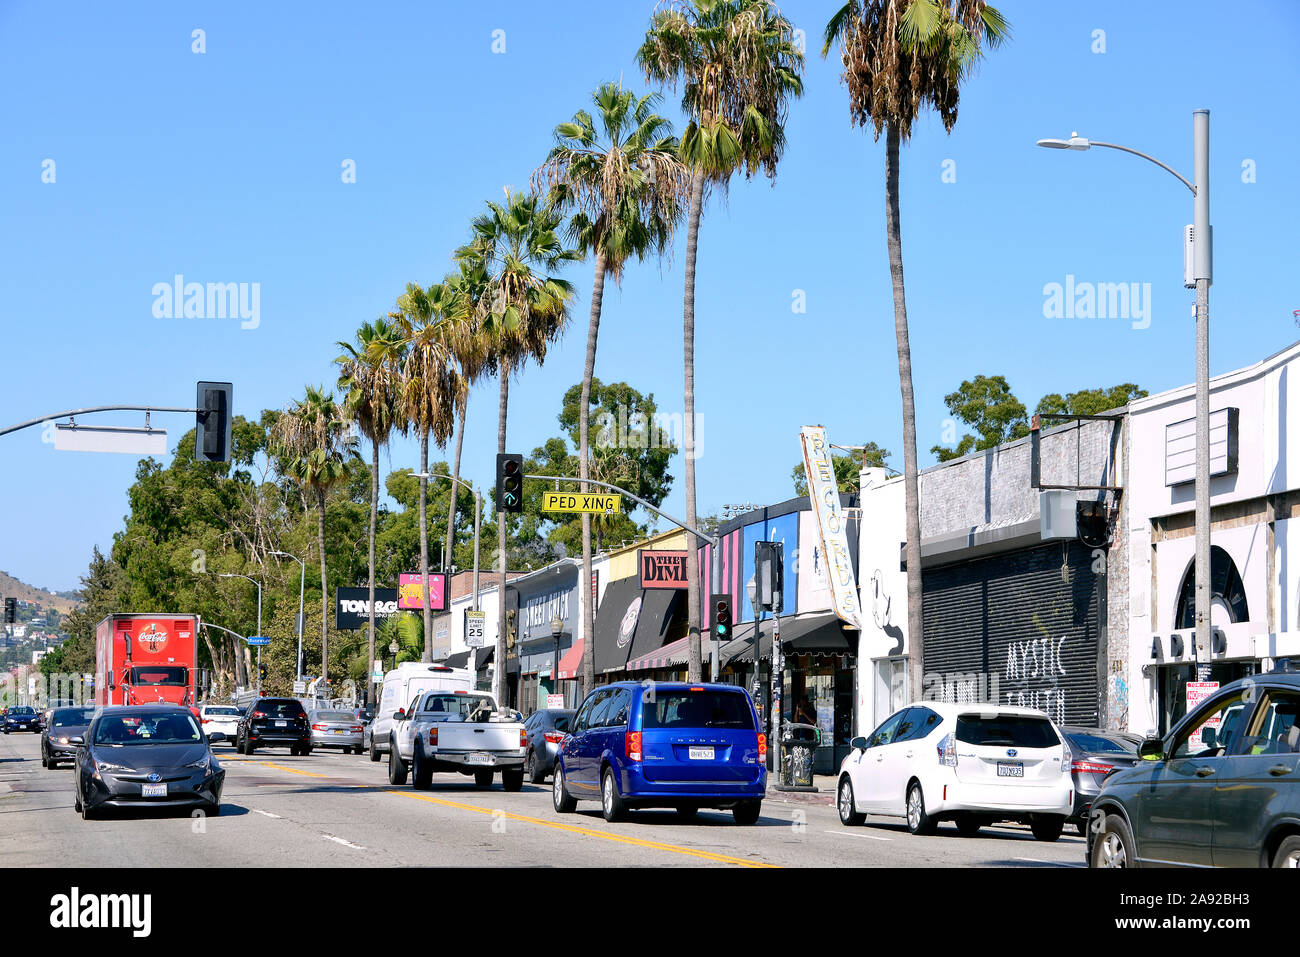 Fairfax Avenue High Resolution Stock Photography And Images Alamy